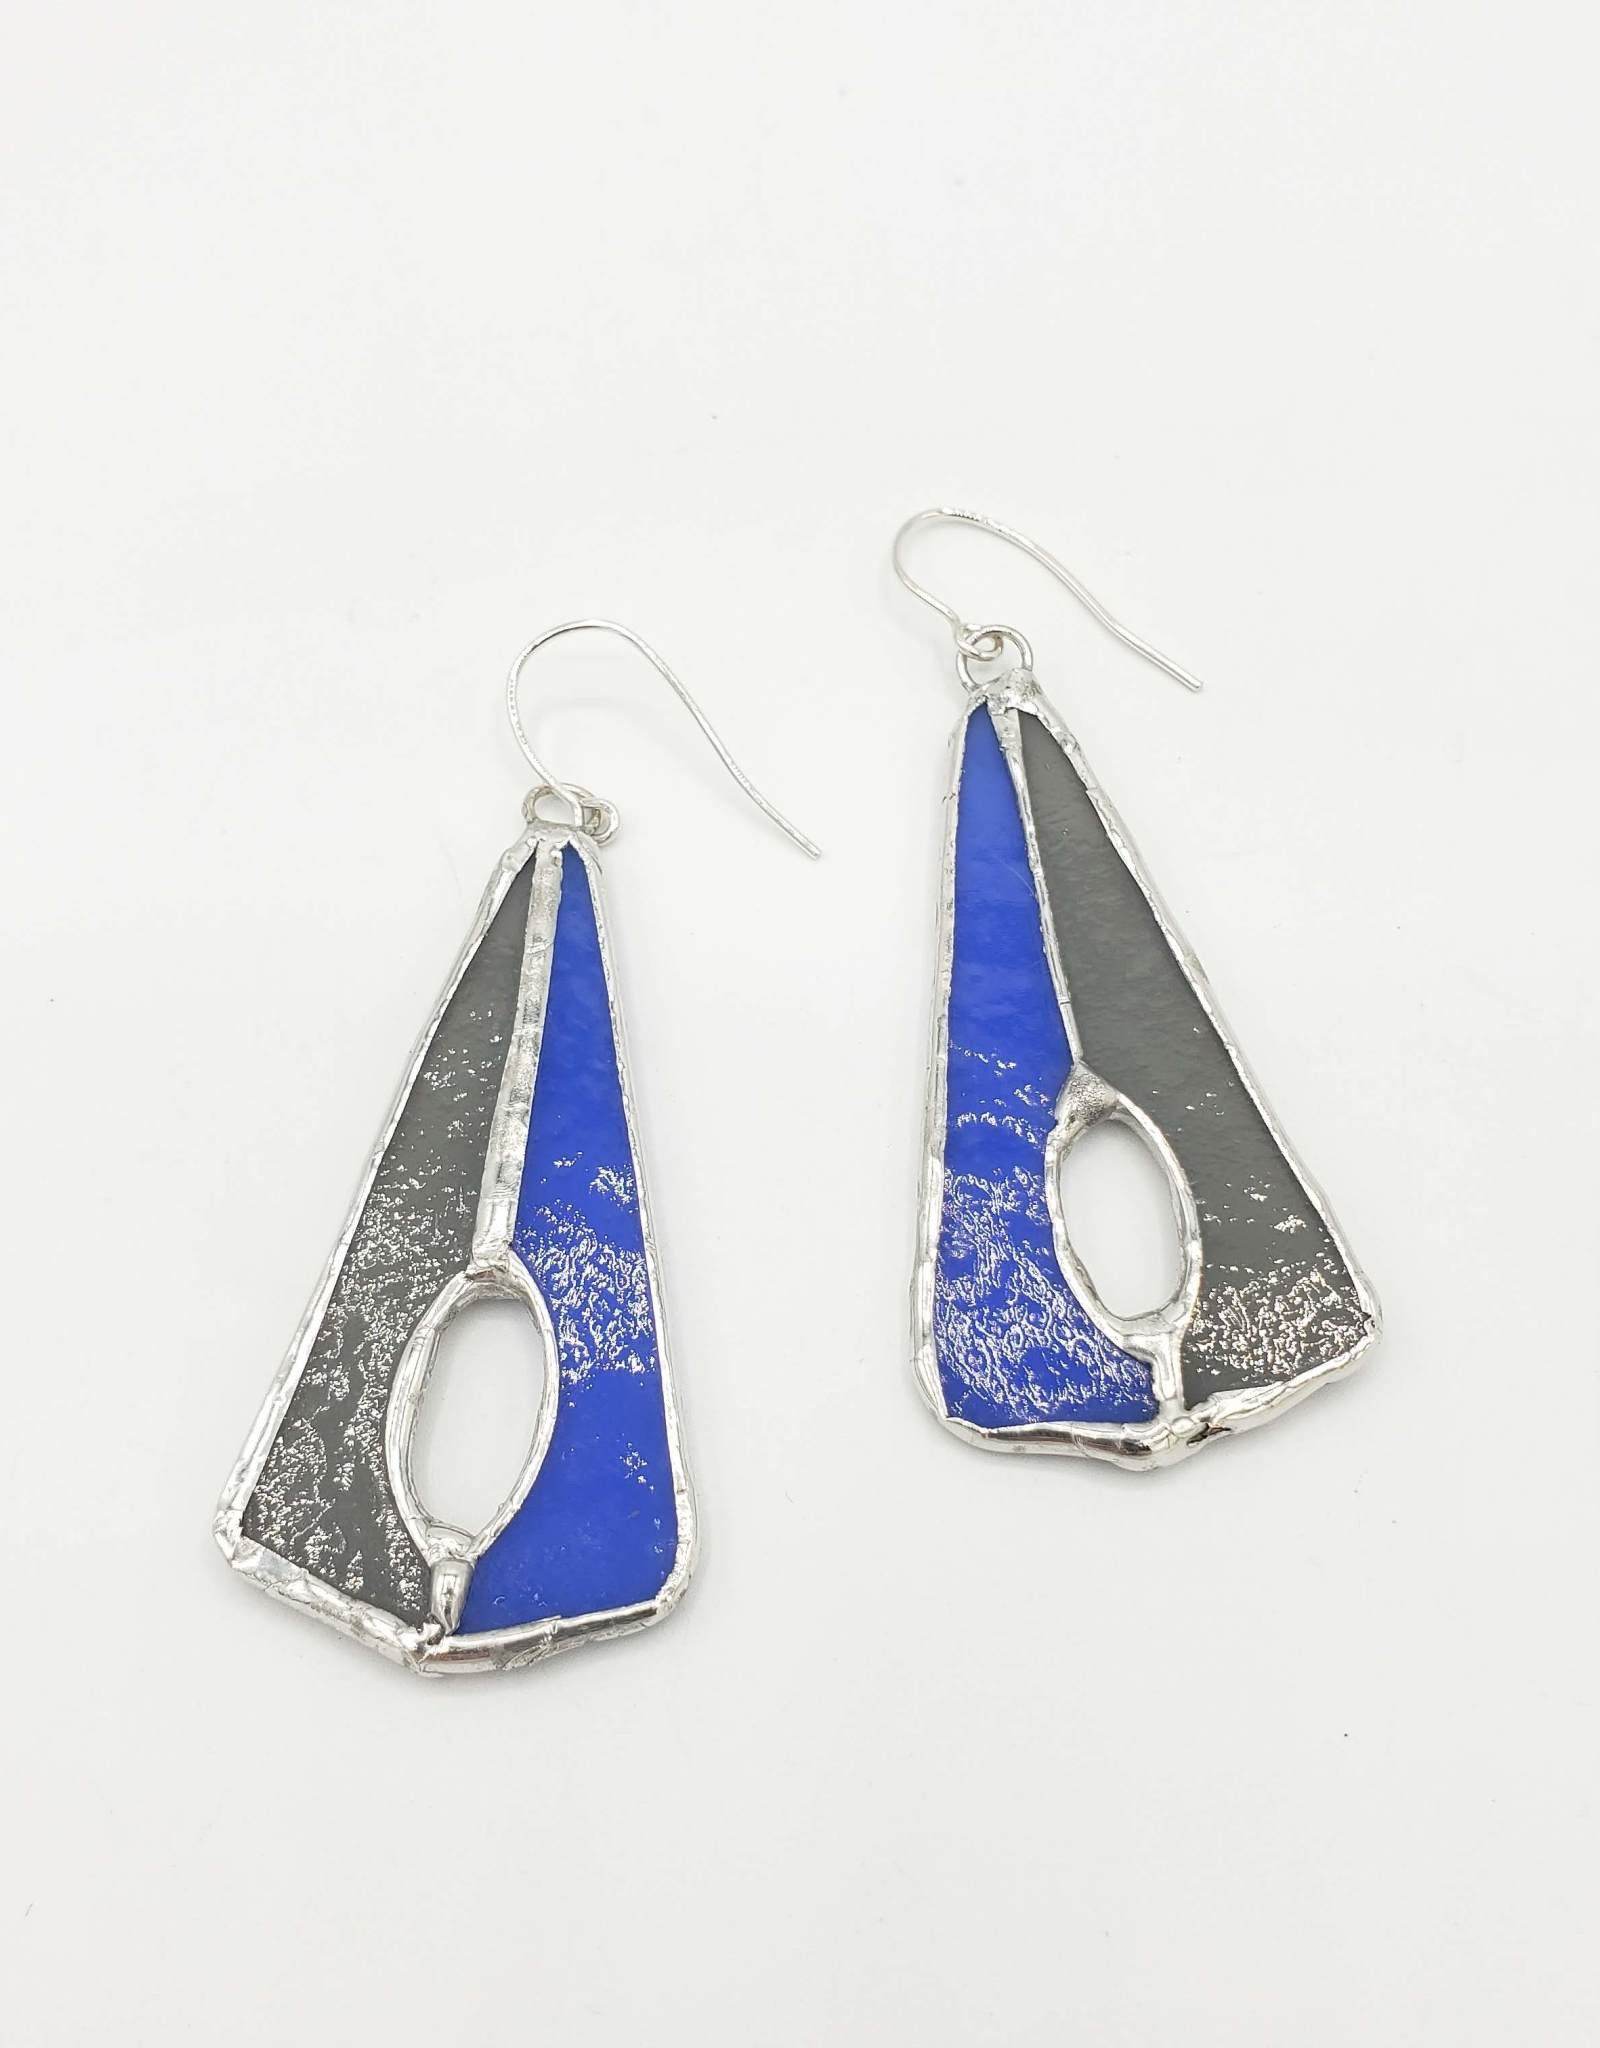 Redux Stained Glass Deco Earring, grey/blue